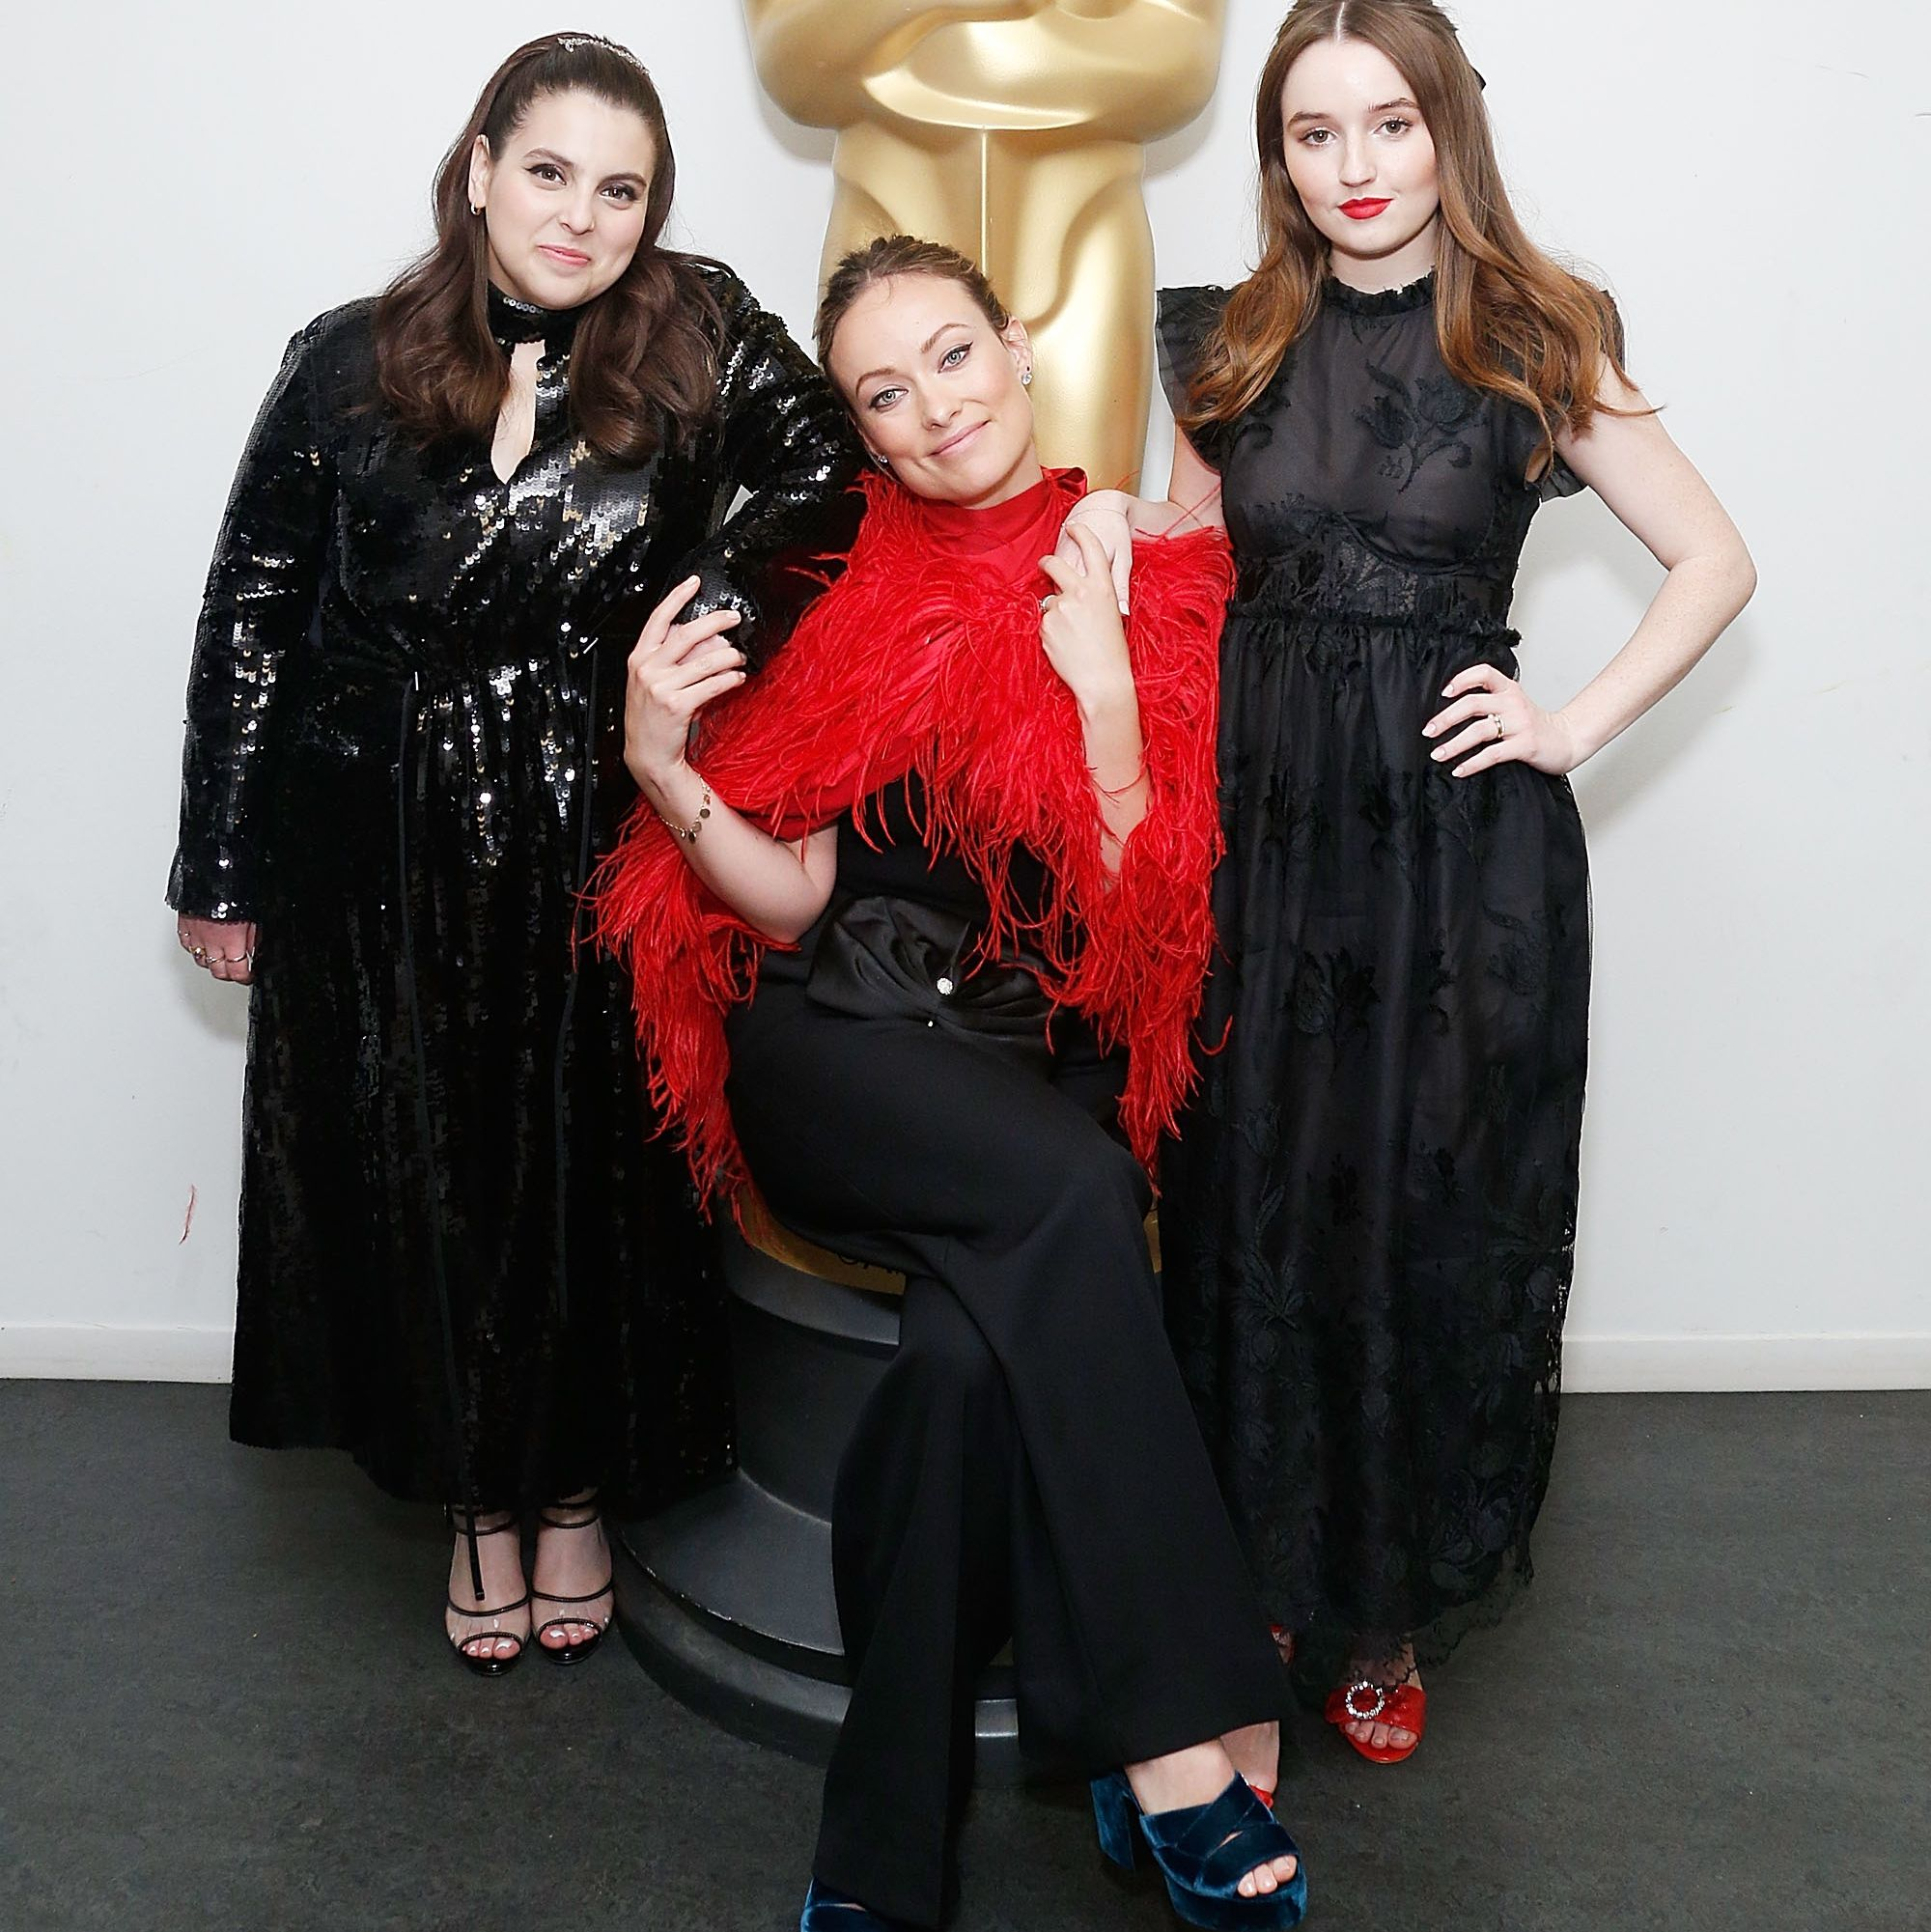 Beanie Feldstein, Olivia Wilde, and Kaitlyn Dever at The Academy of Motion Picture Arts & Sciences screening of Booksmart . The film marks Wilde's directorial debut.